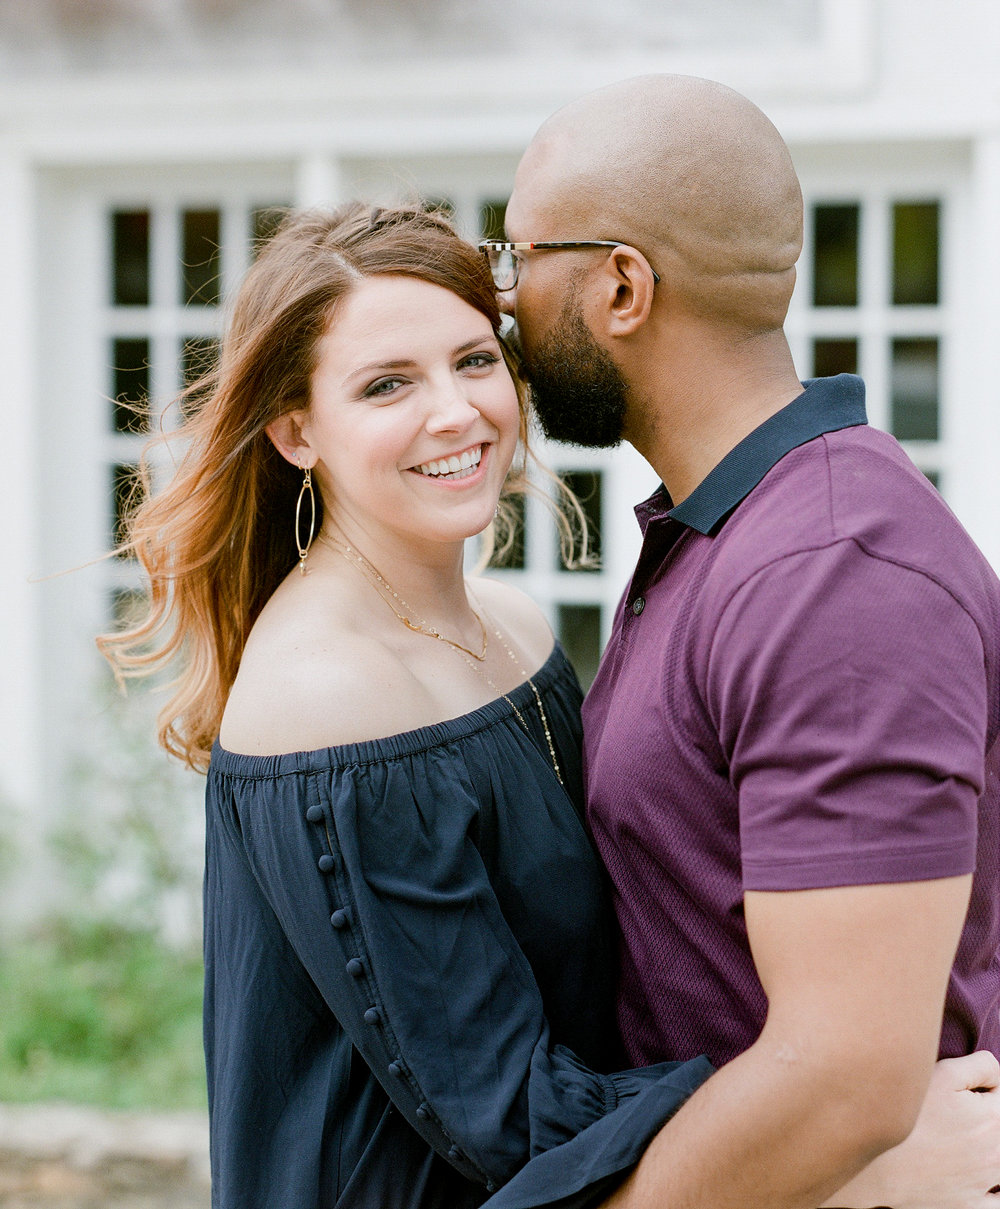 Krog Street Market Engagement Session-1000.jpg